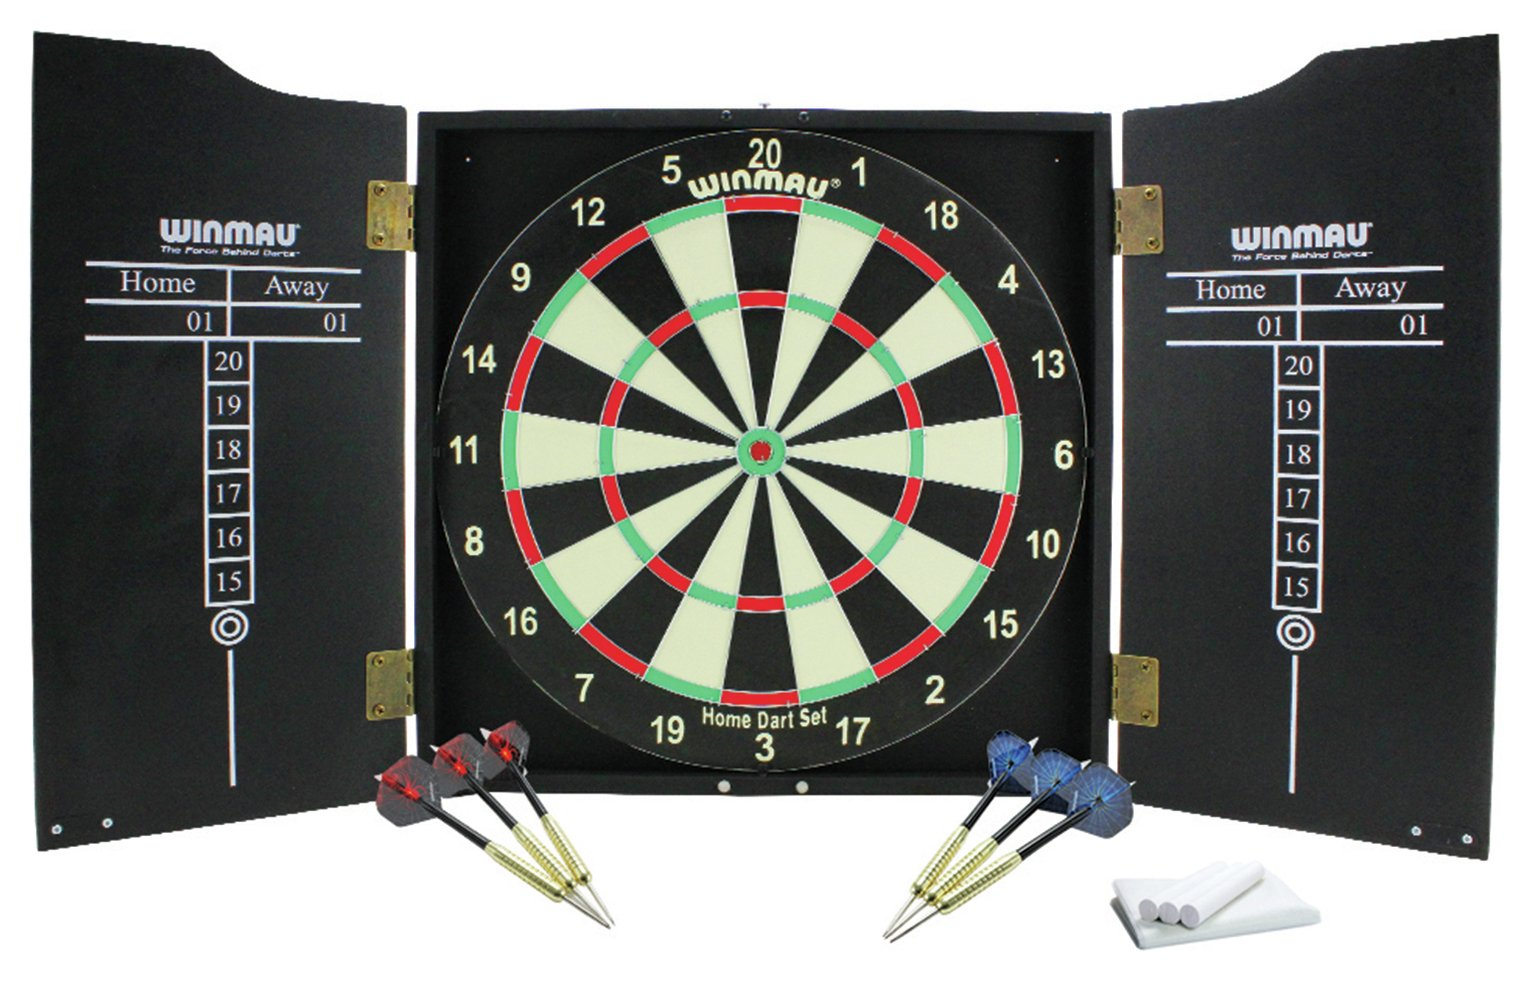 Winmau Home Darts Set. from Winmau